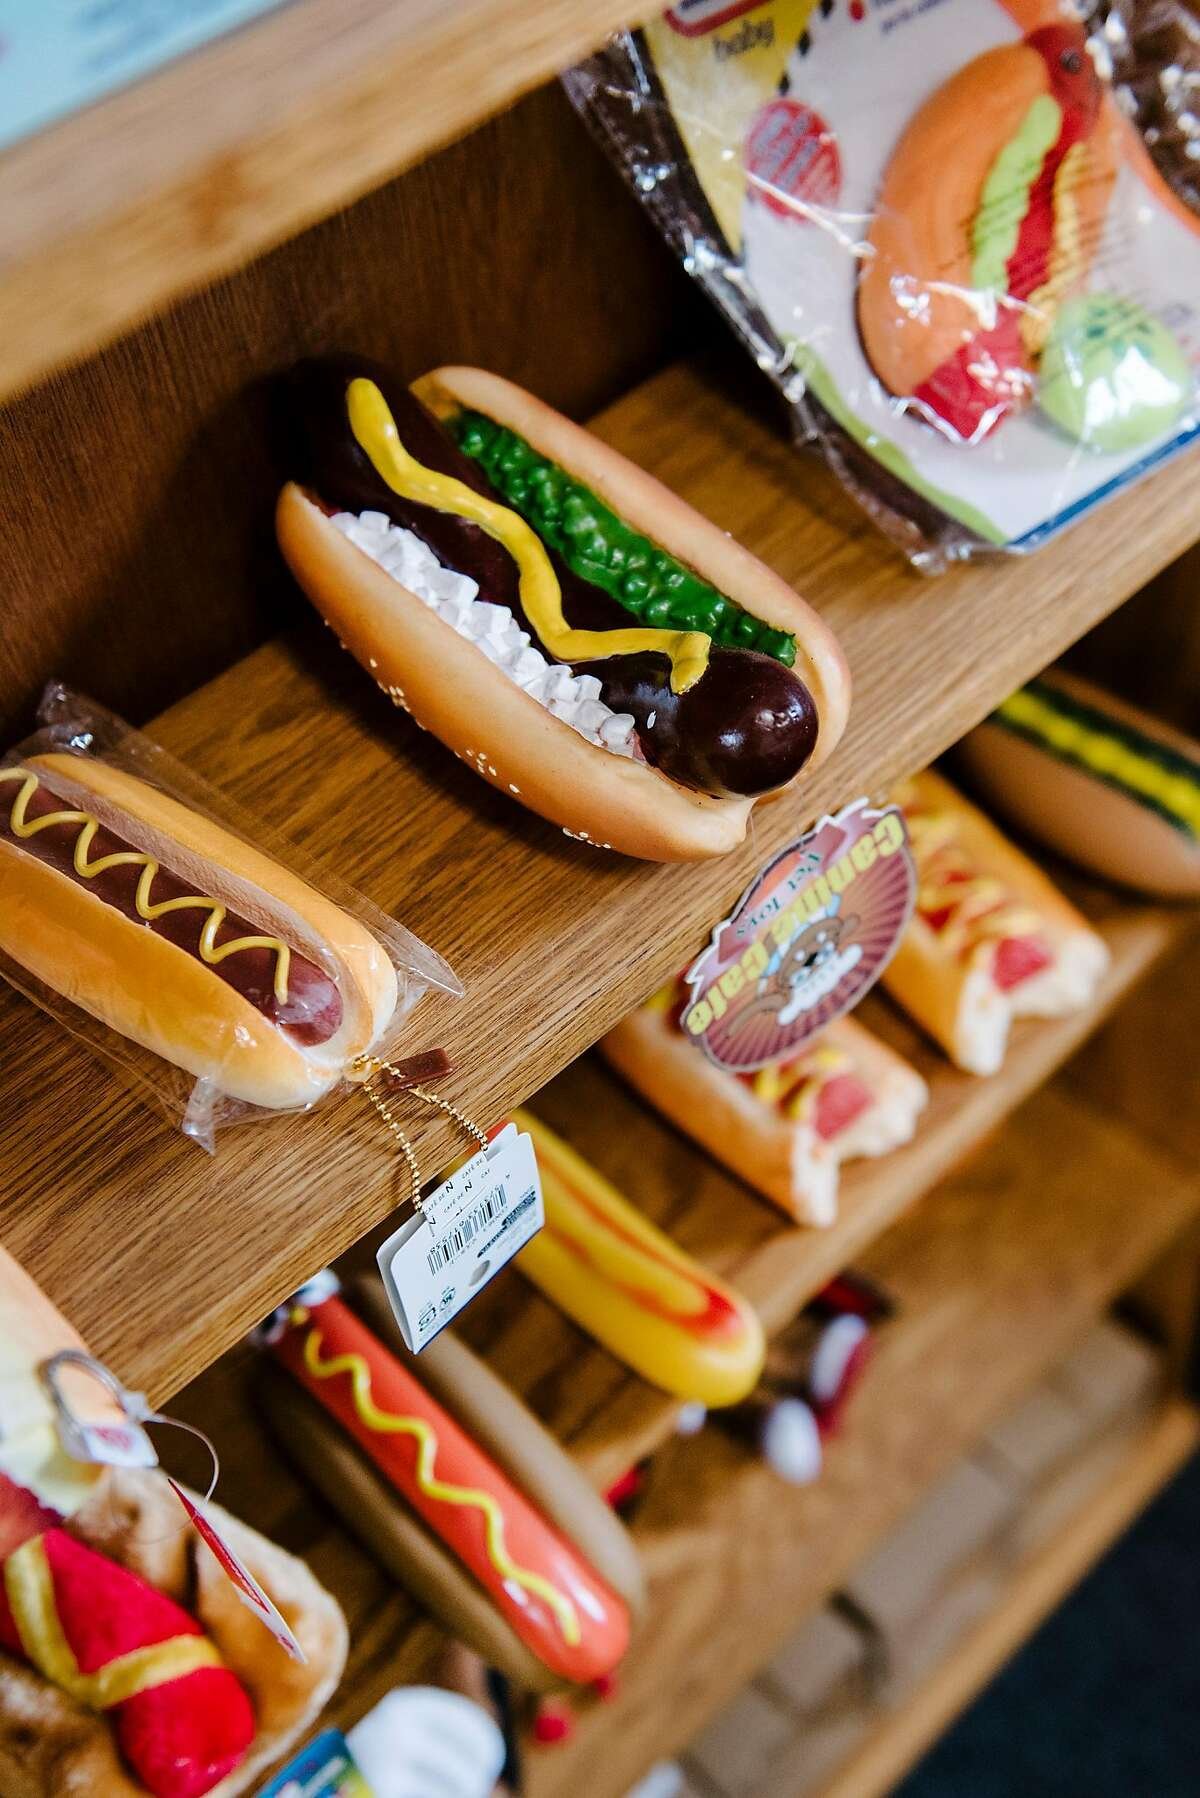 Hotdog themed items line the walls of Kip Atchley's office in Napa, Calif., on July 5th, 2019. Napa resident Kip Atchley wants to resurrect Doggie Diner, the fast-food chain that maintained locations in San Francisco and Oakland from the 1940s to the 1980s